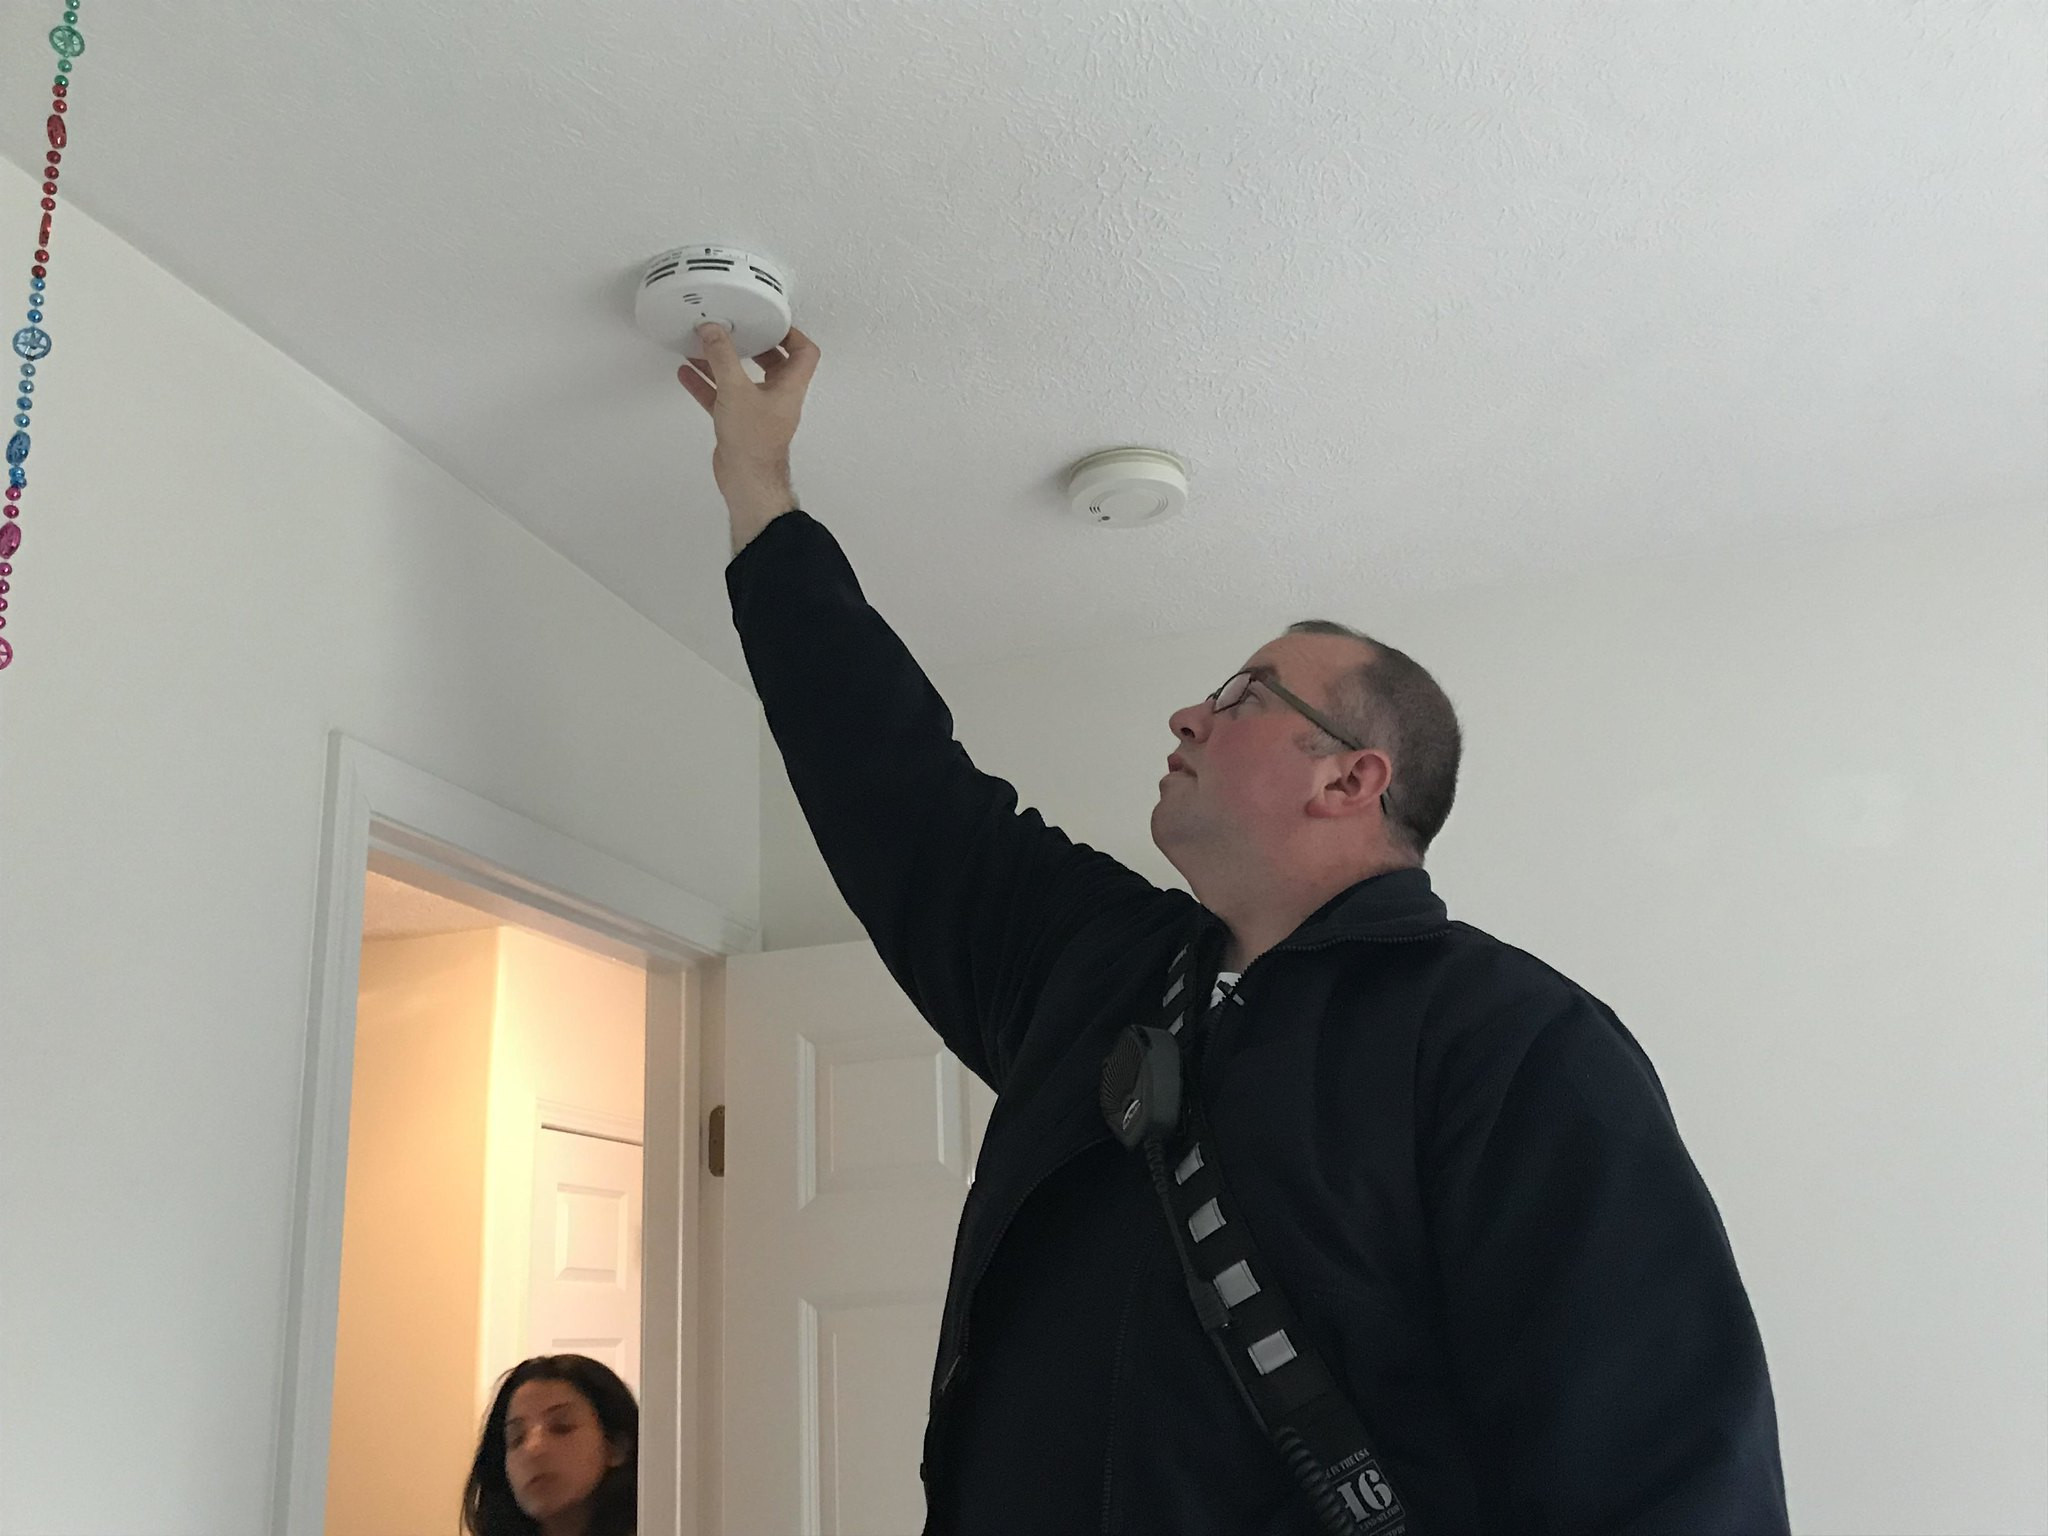 Hundreds Of Residents Request Smoke and Carbon Monoxide Alarms